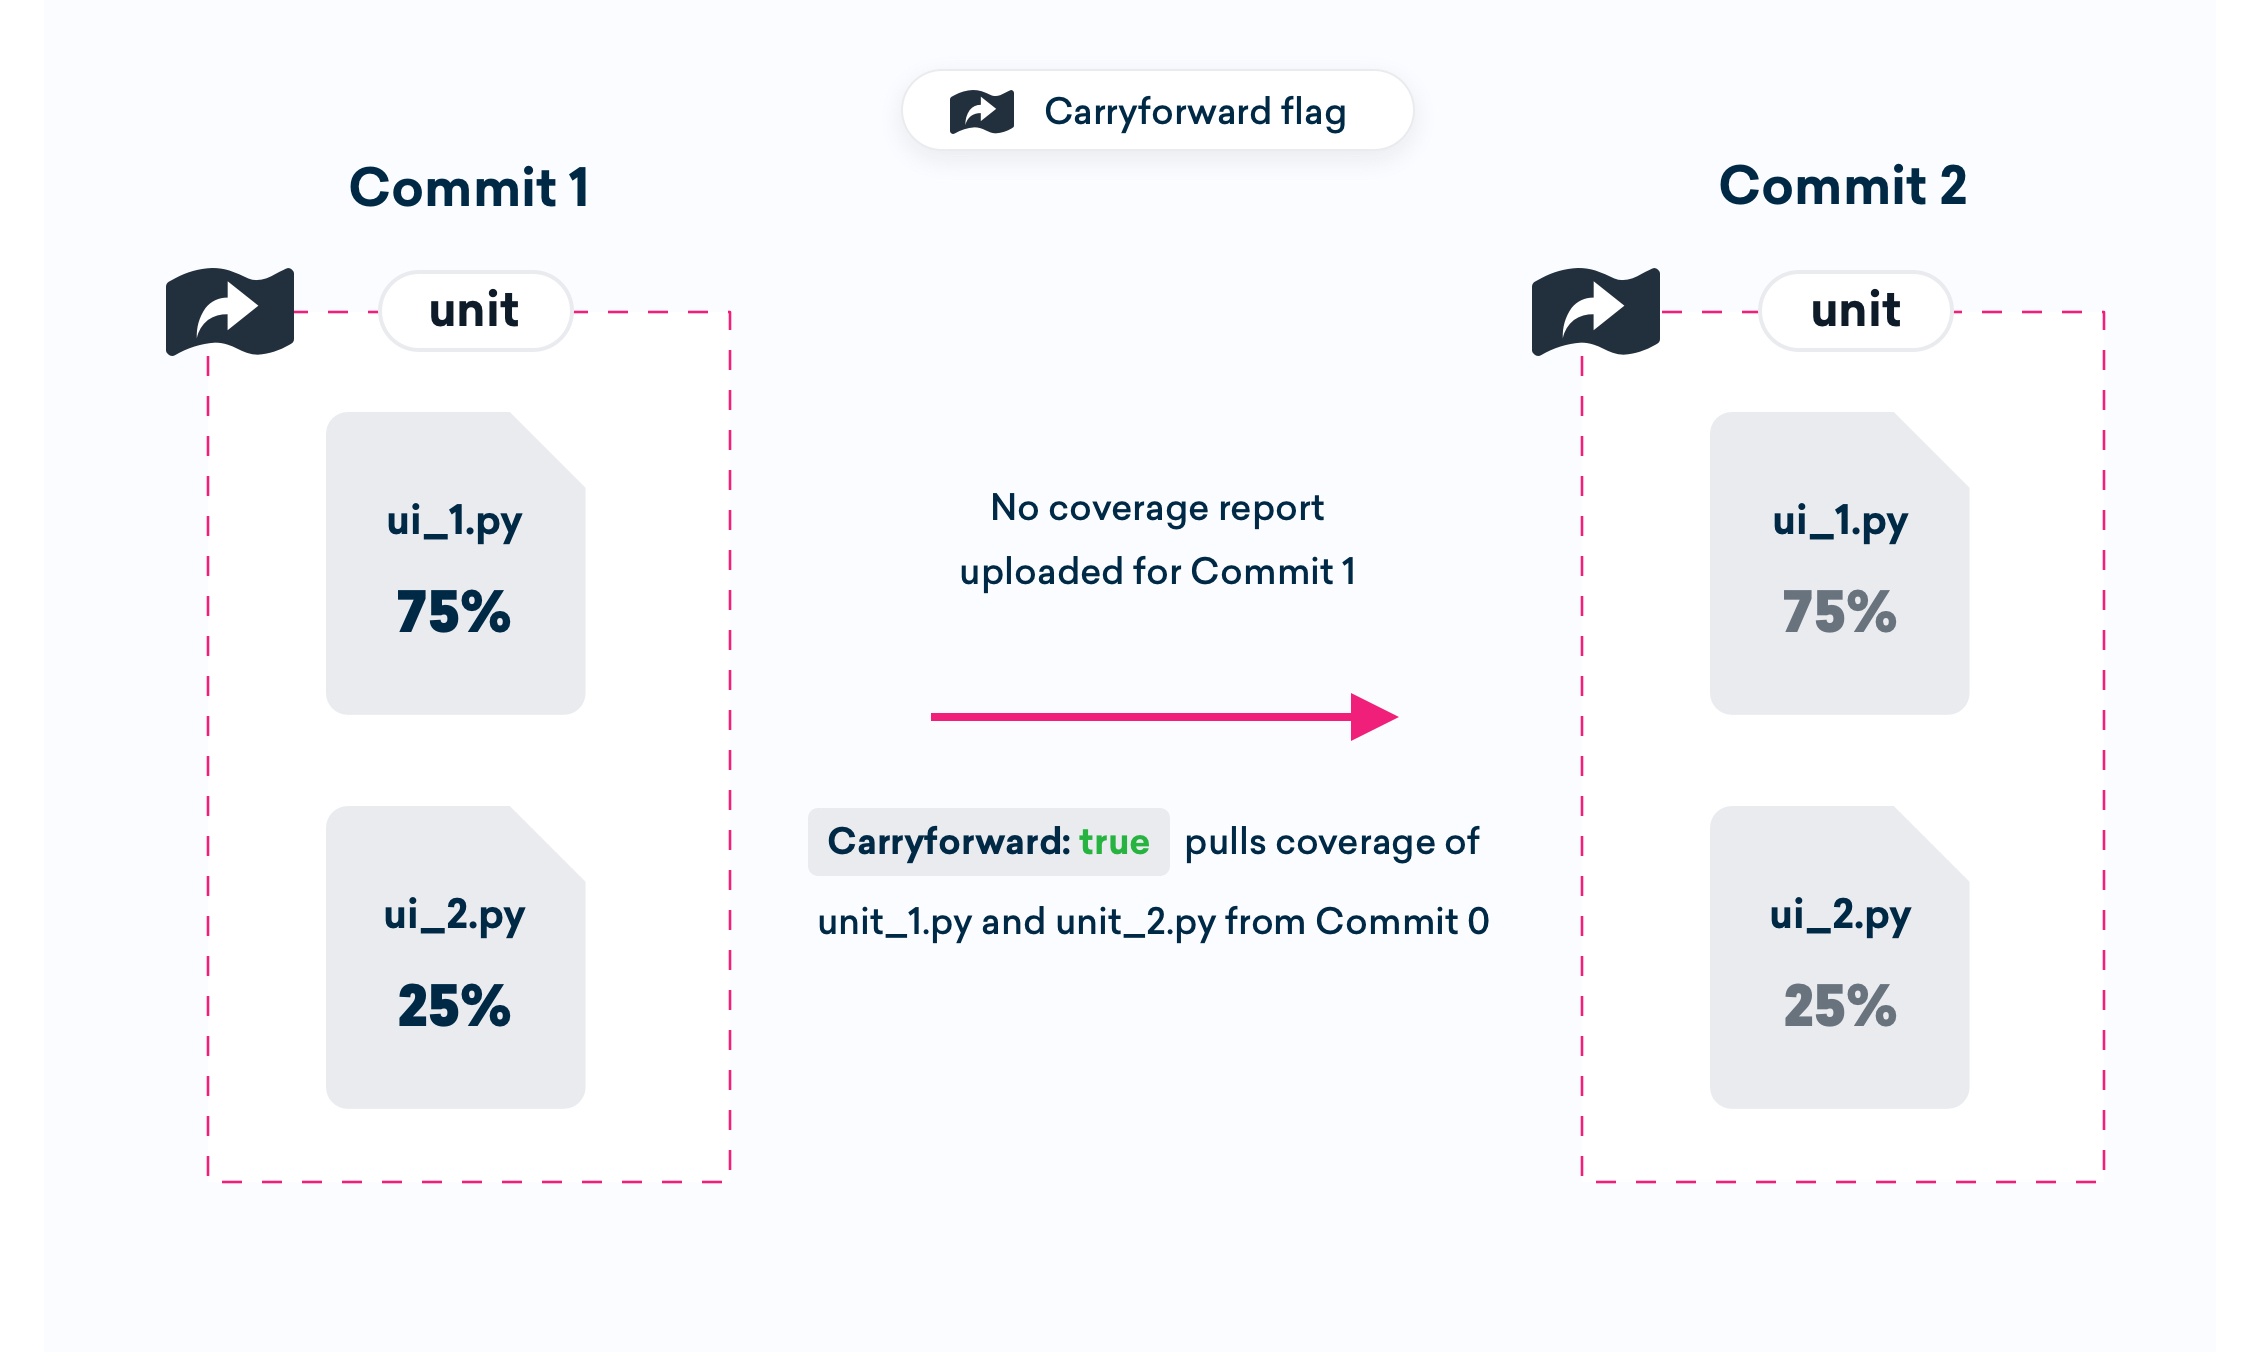 An example of 2 commits using Caryforward flags